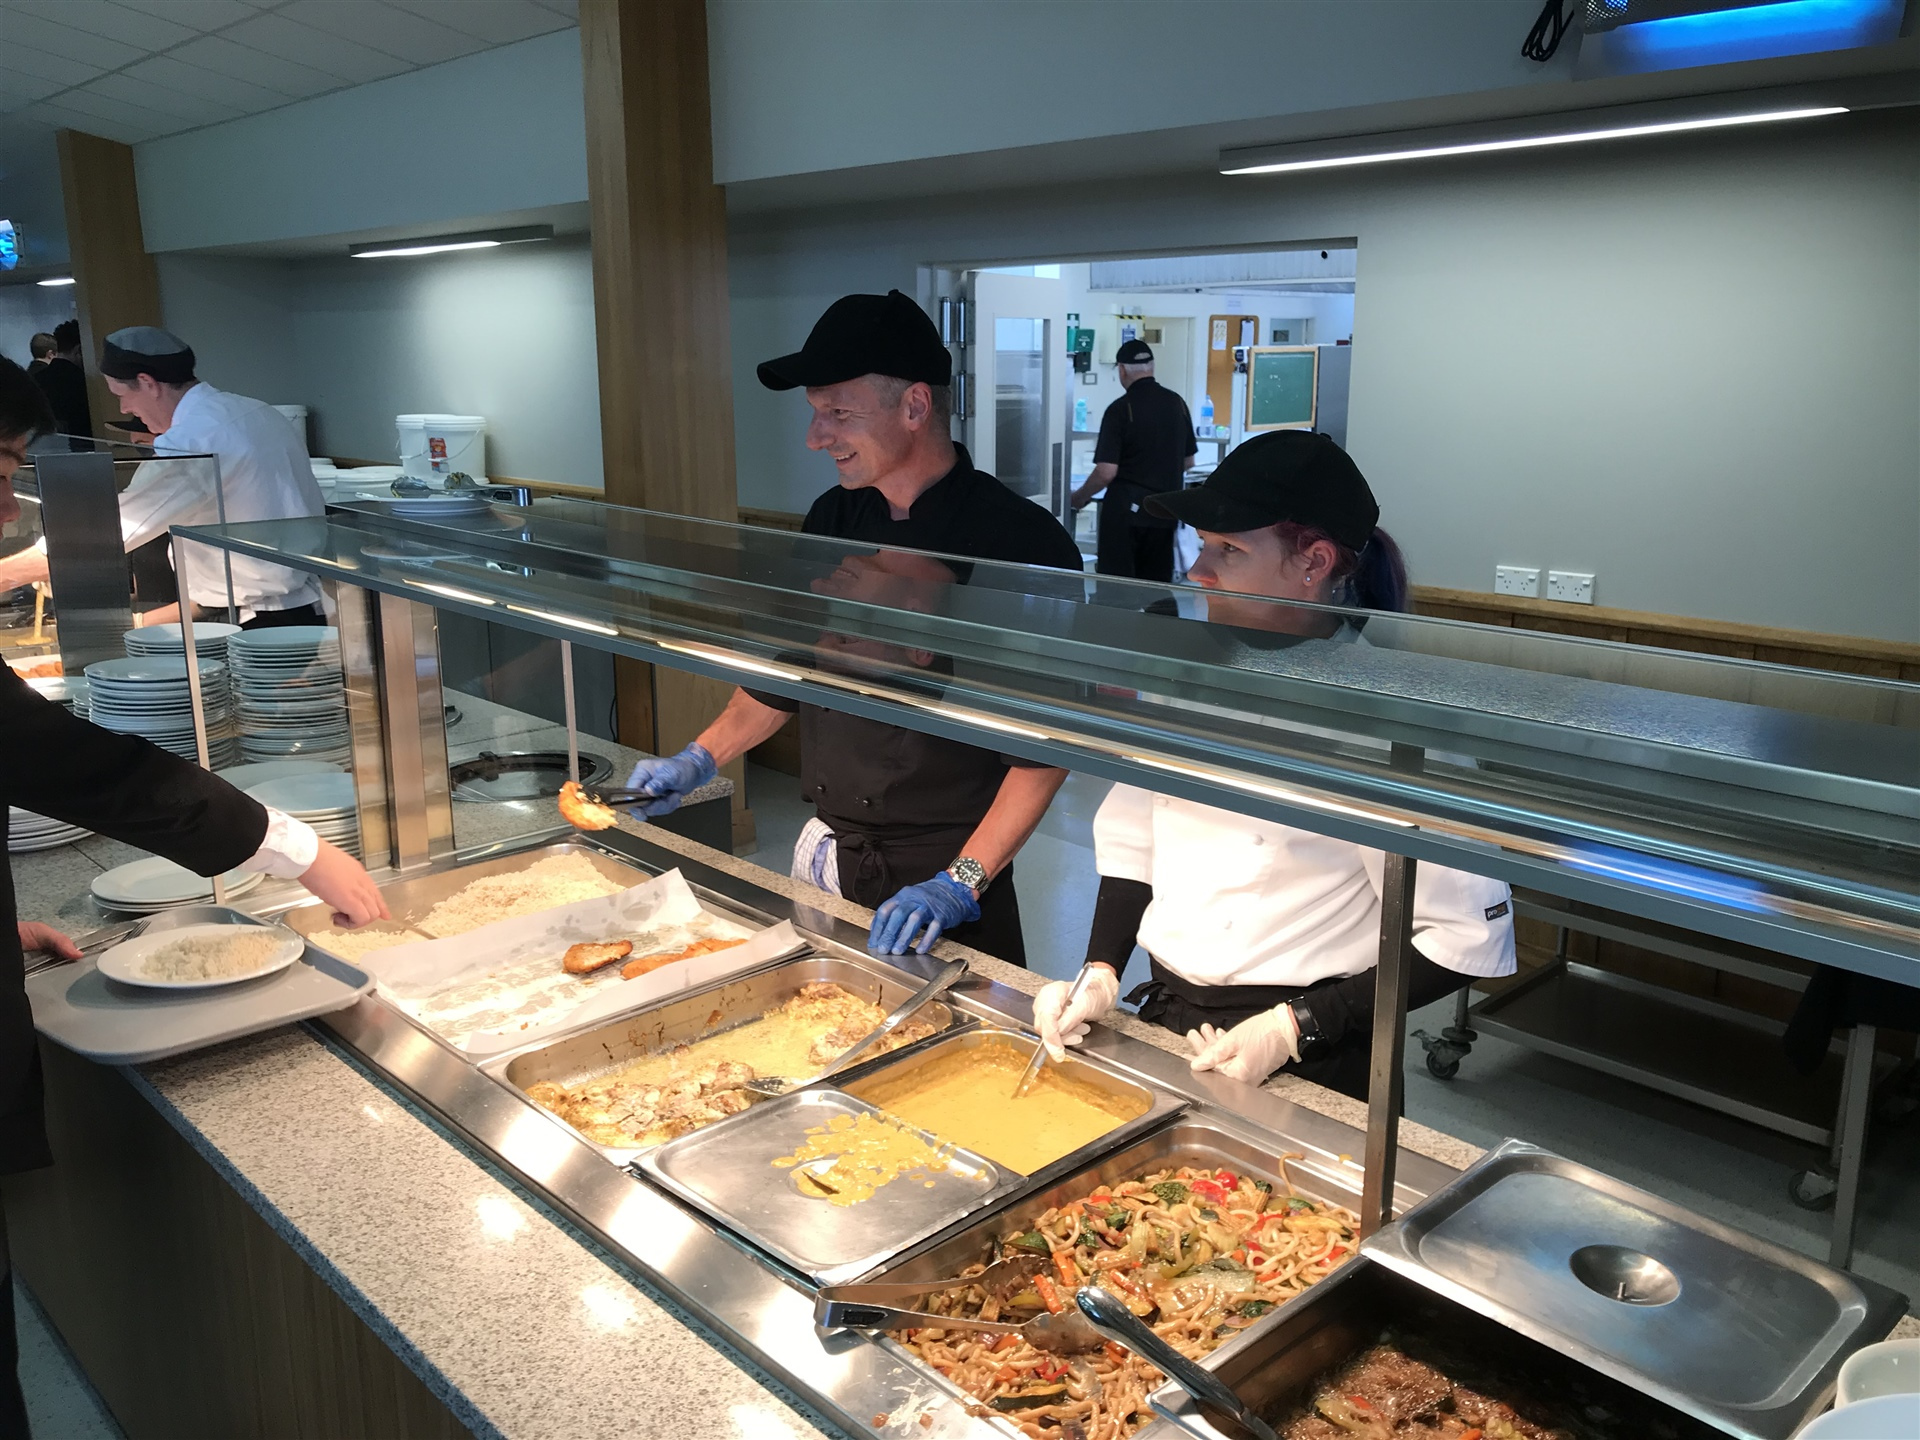 Kitchen staff and students enjoy a lasting bond